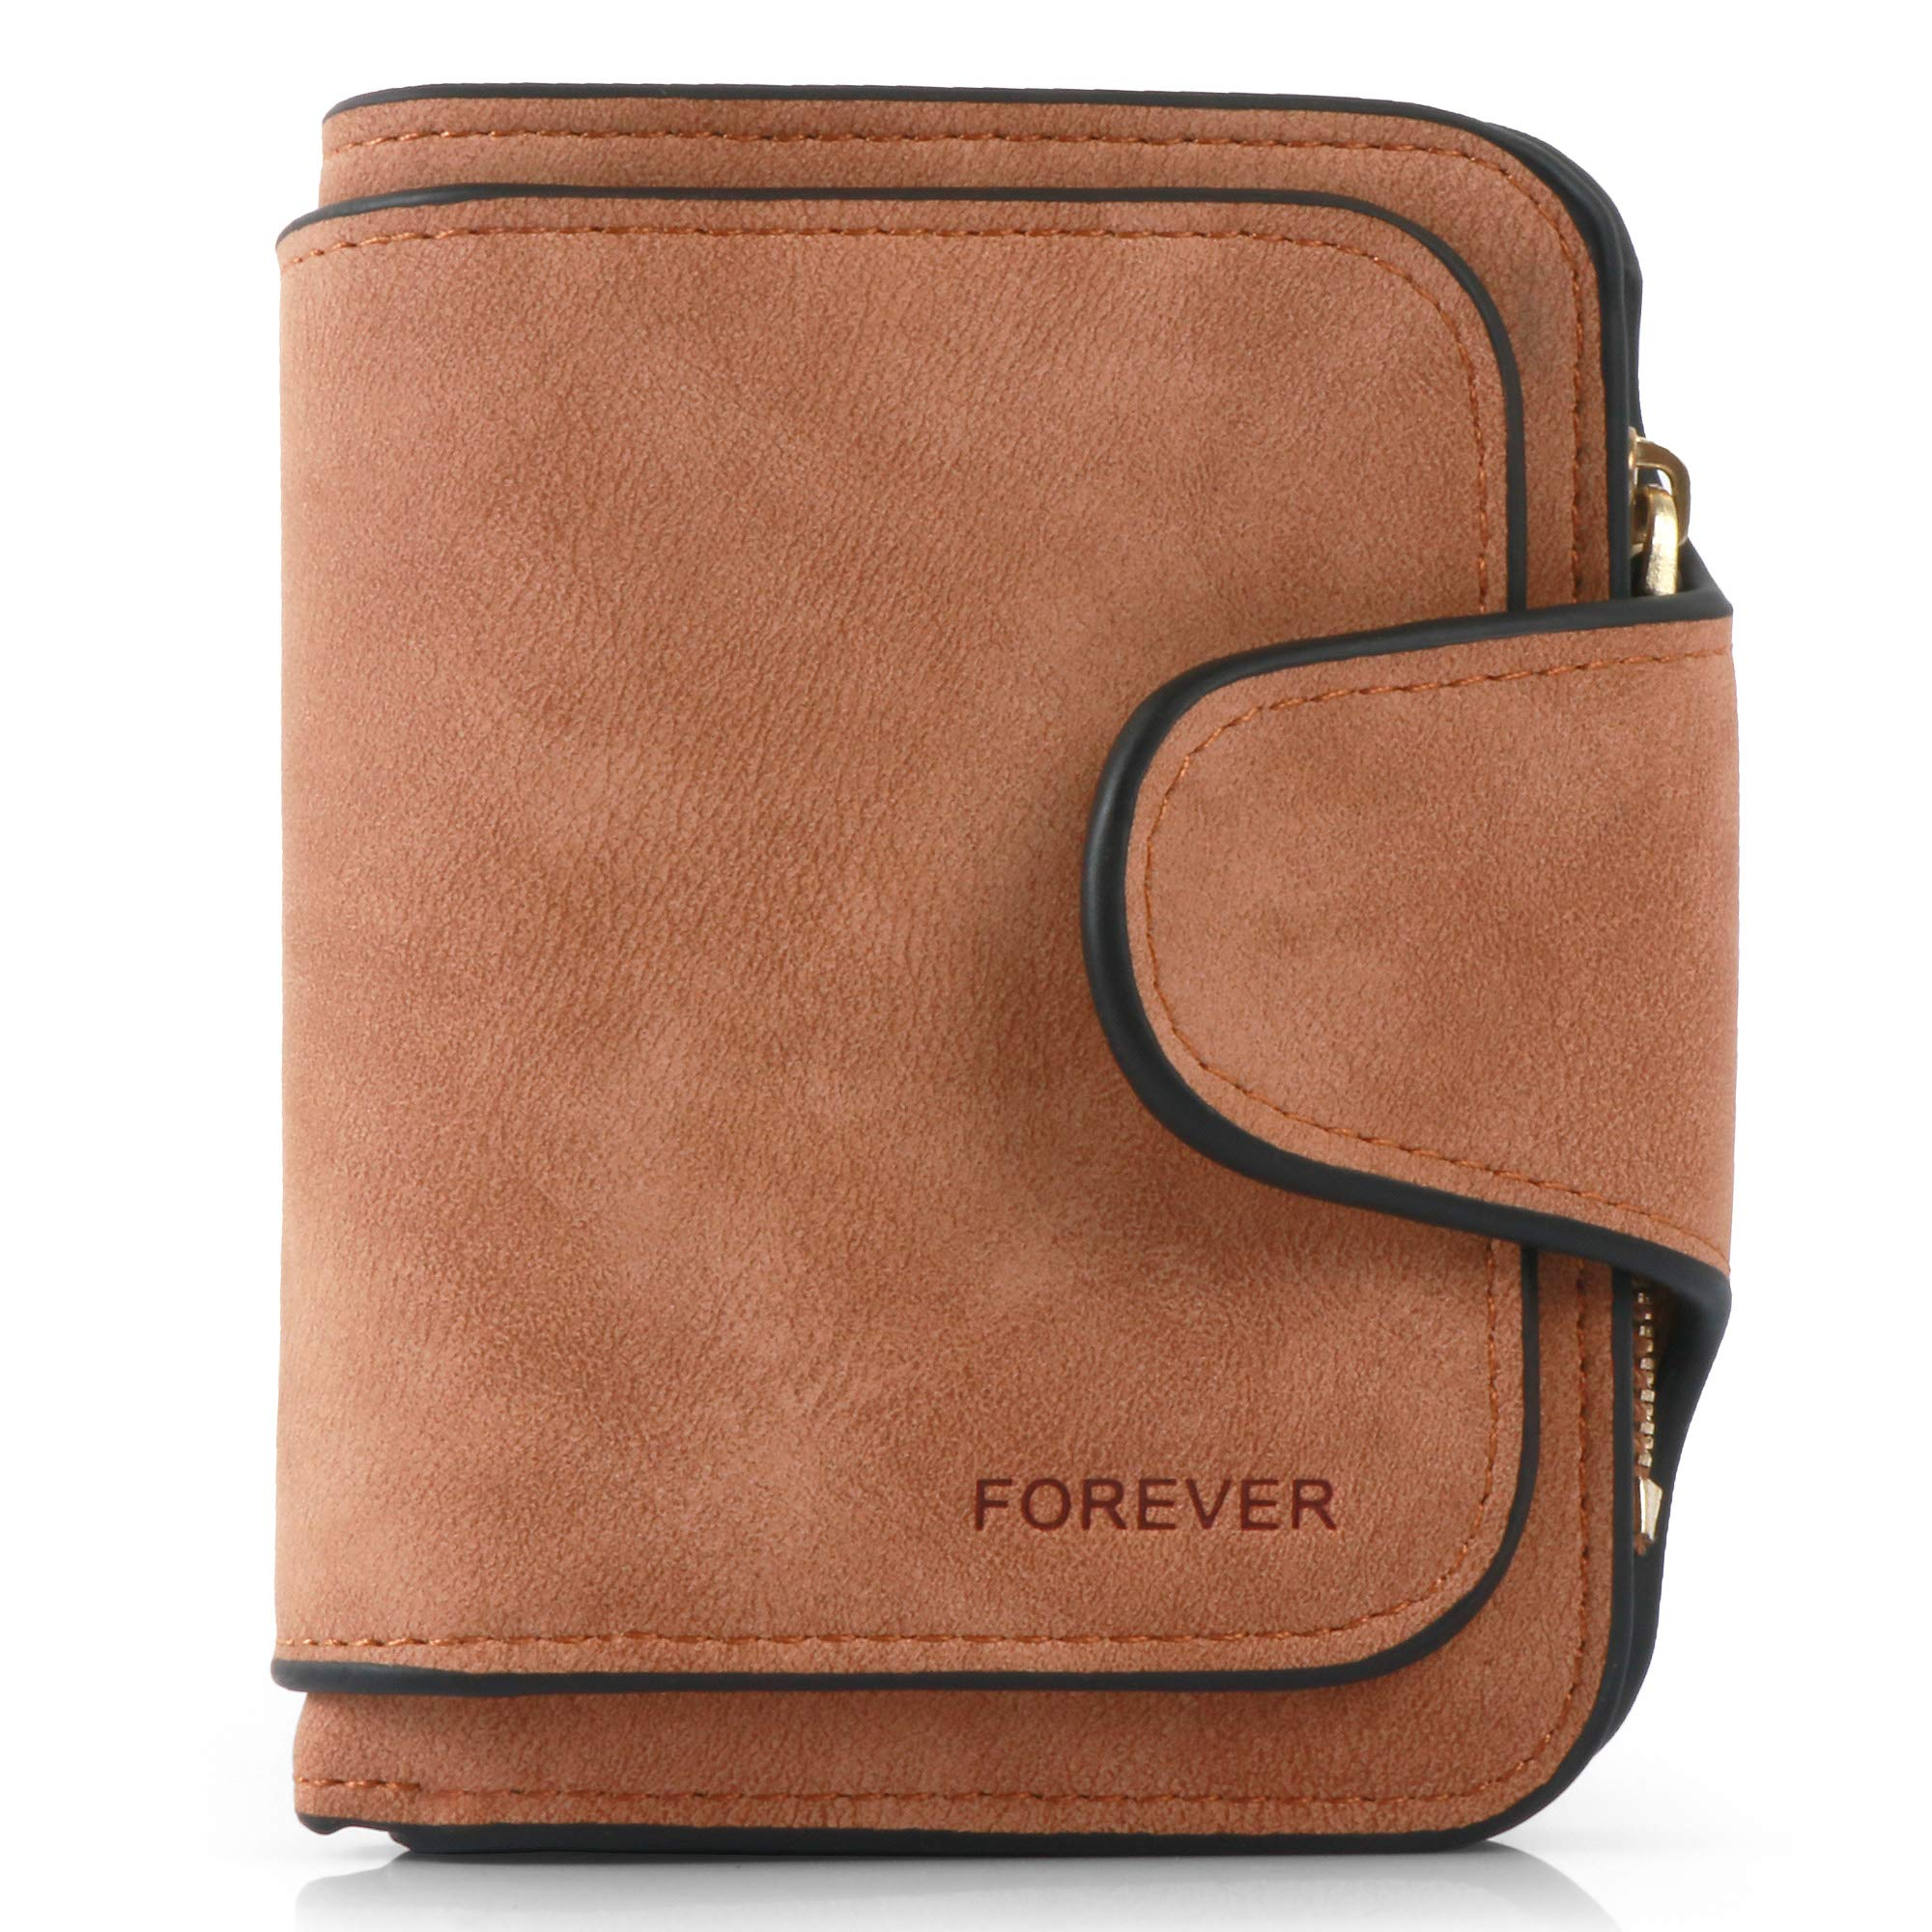 Women Purse Fashion Pu Leather Cute Clutch Small Ladies Credit Card Holder Wallet Organizer For Female Color - Brown by Pearl Angeli (Image #2)